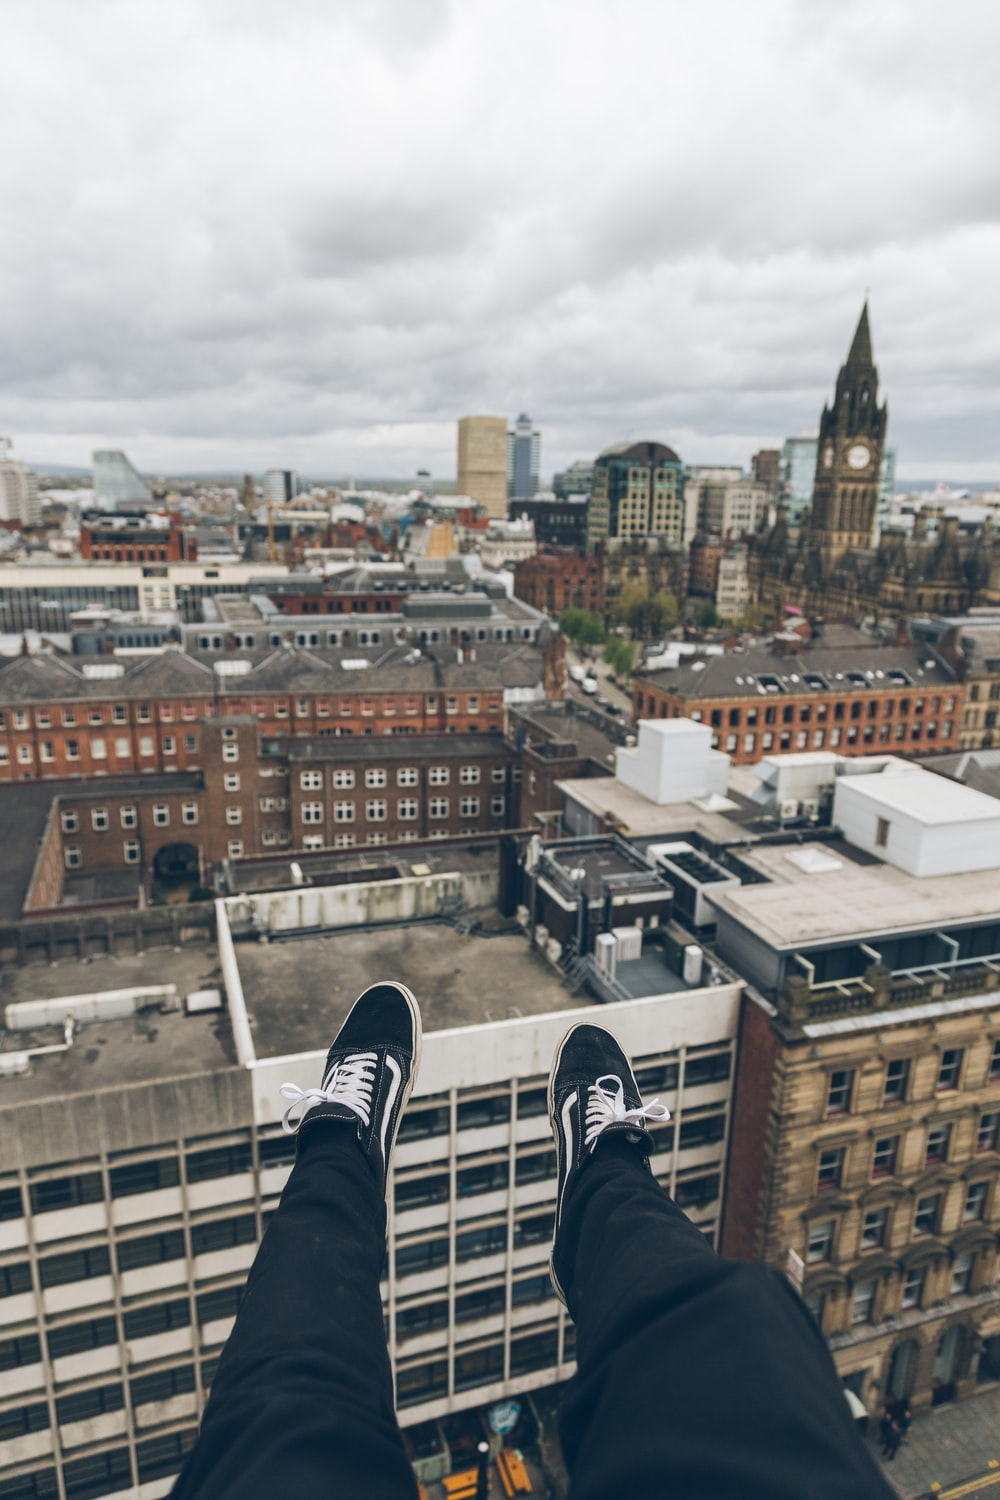 person sitting on edge of building rooftop